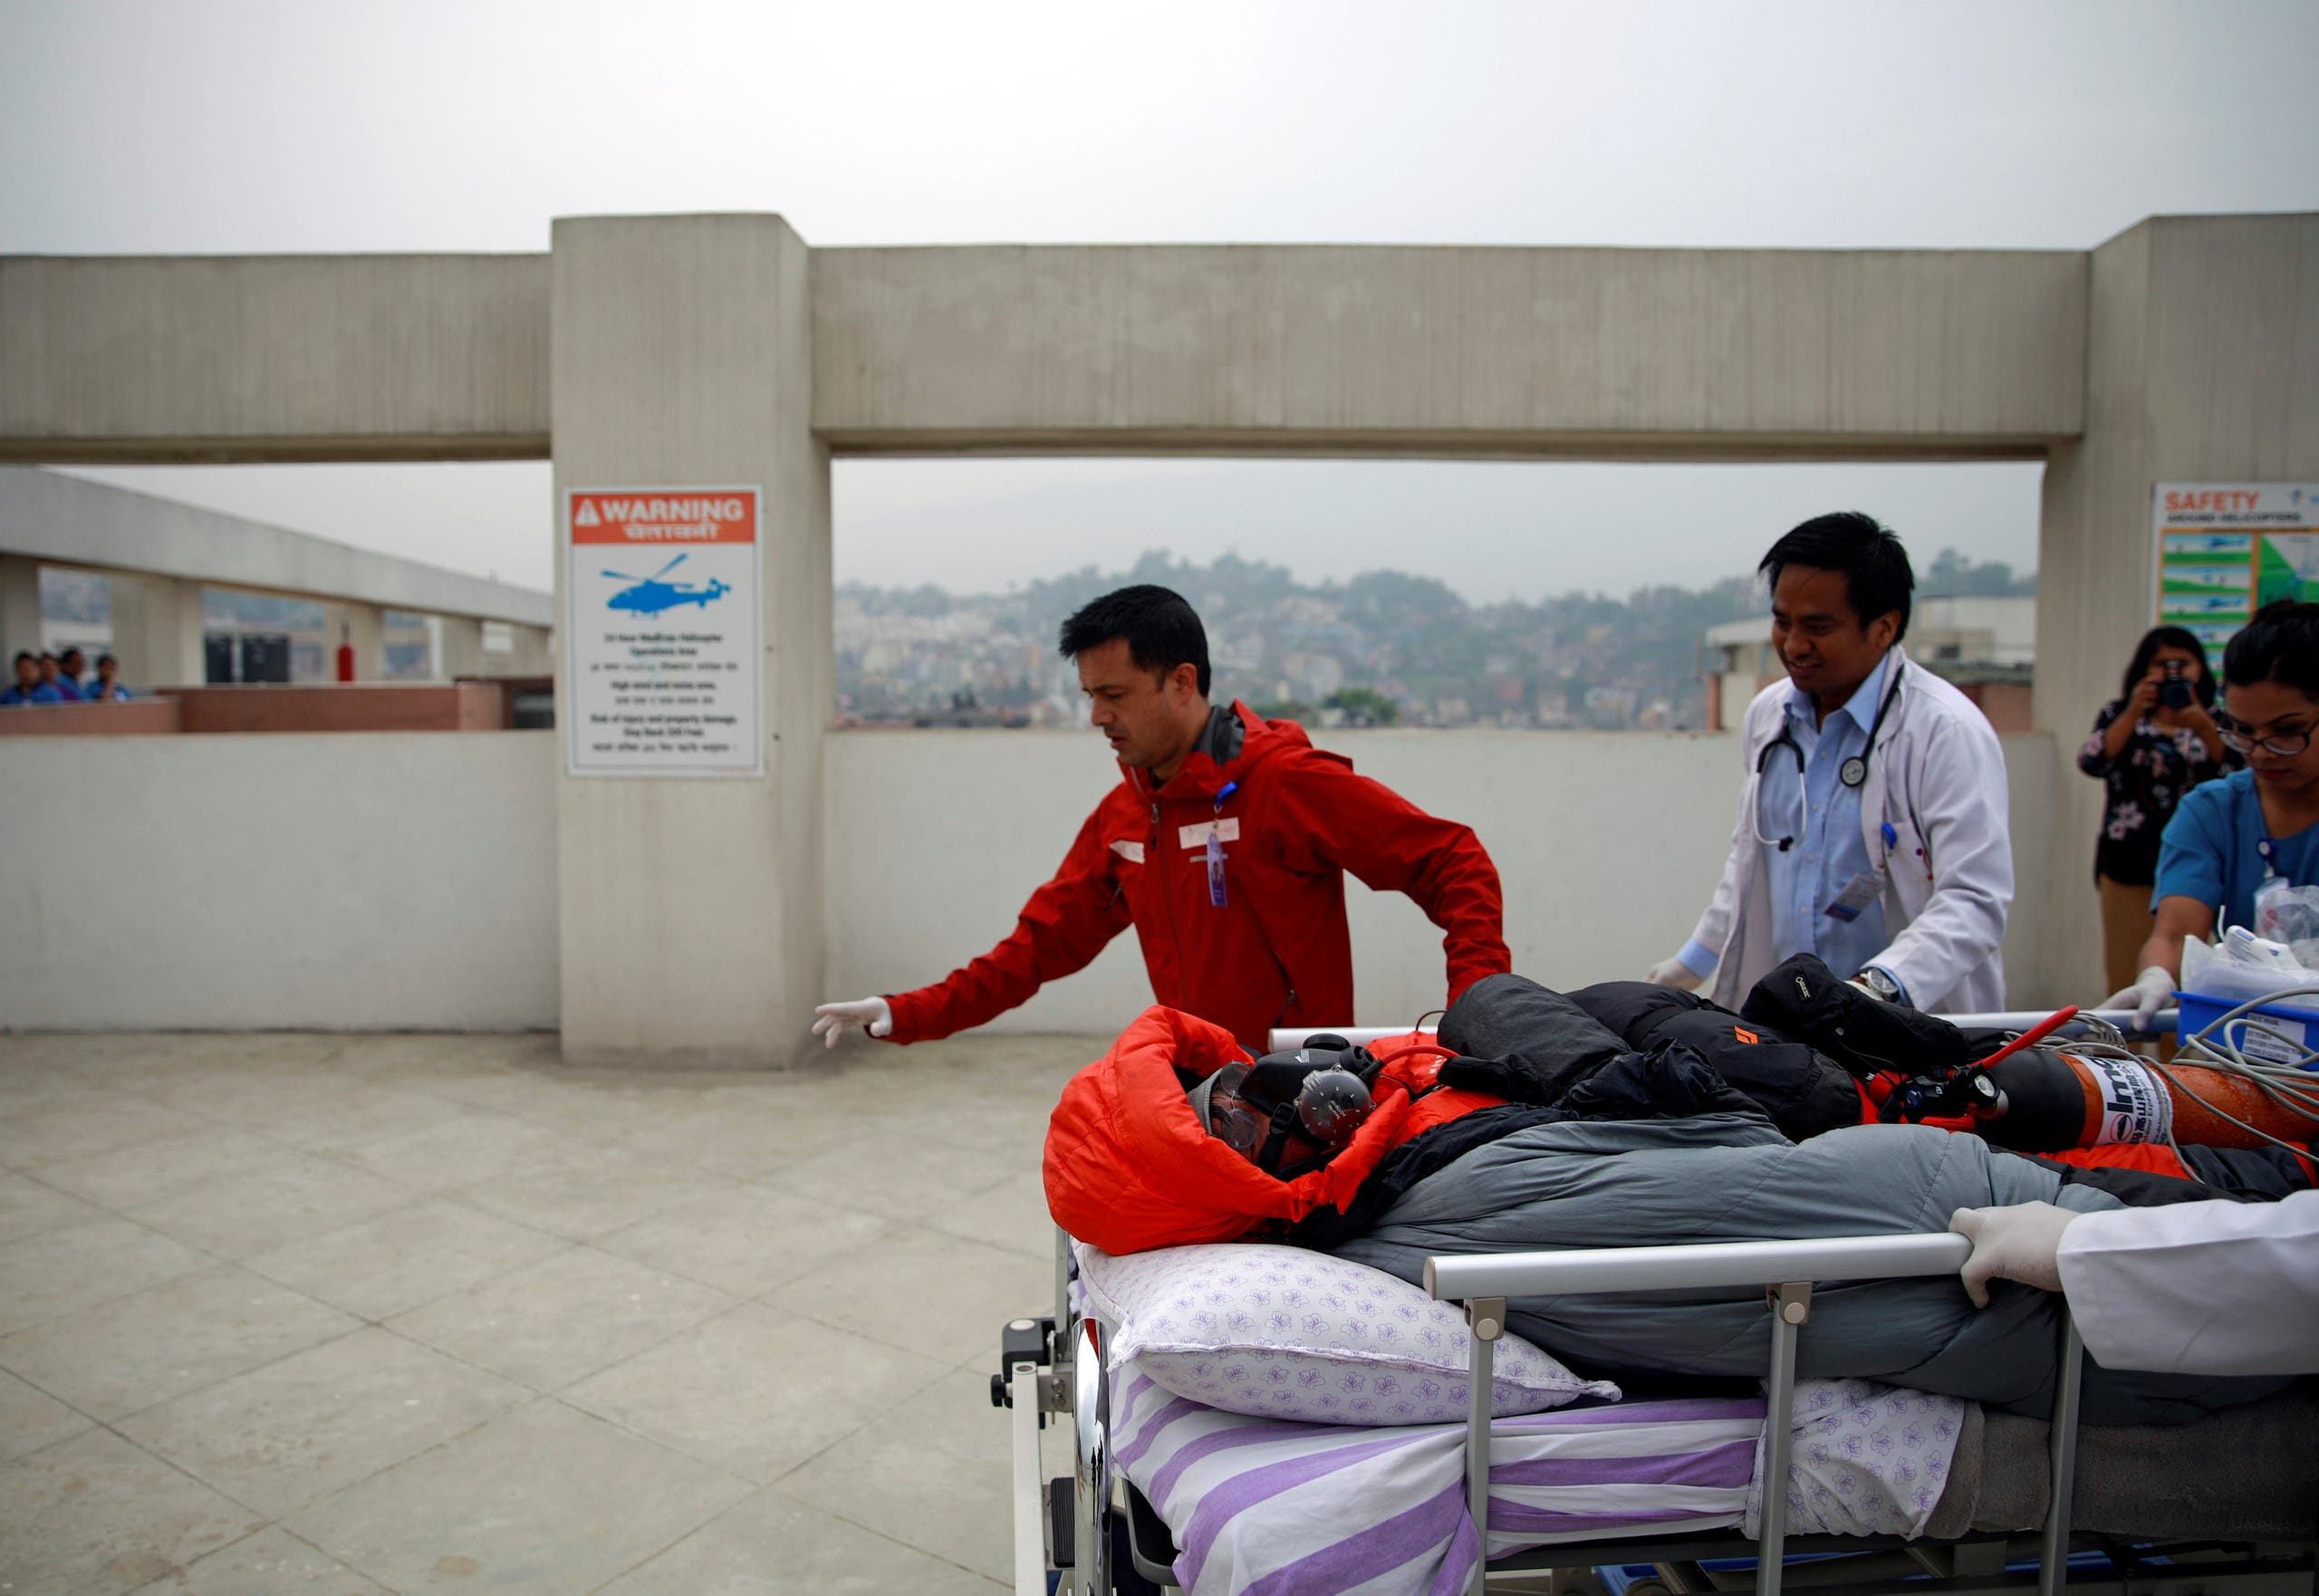 Malaysian climber Wui Kin Chin is being transferred from a helicopter to the hospital for treatment after being rescued from Mount Annapurna in Kathmandu (AP)